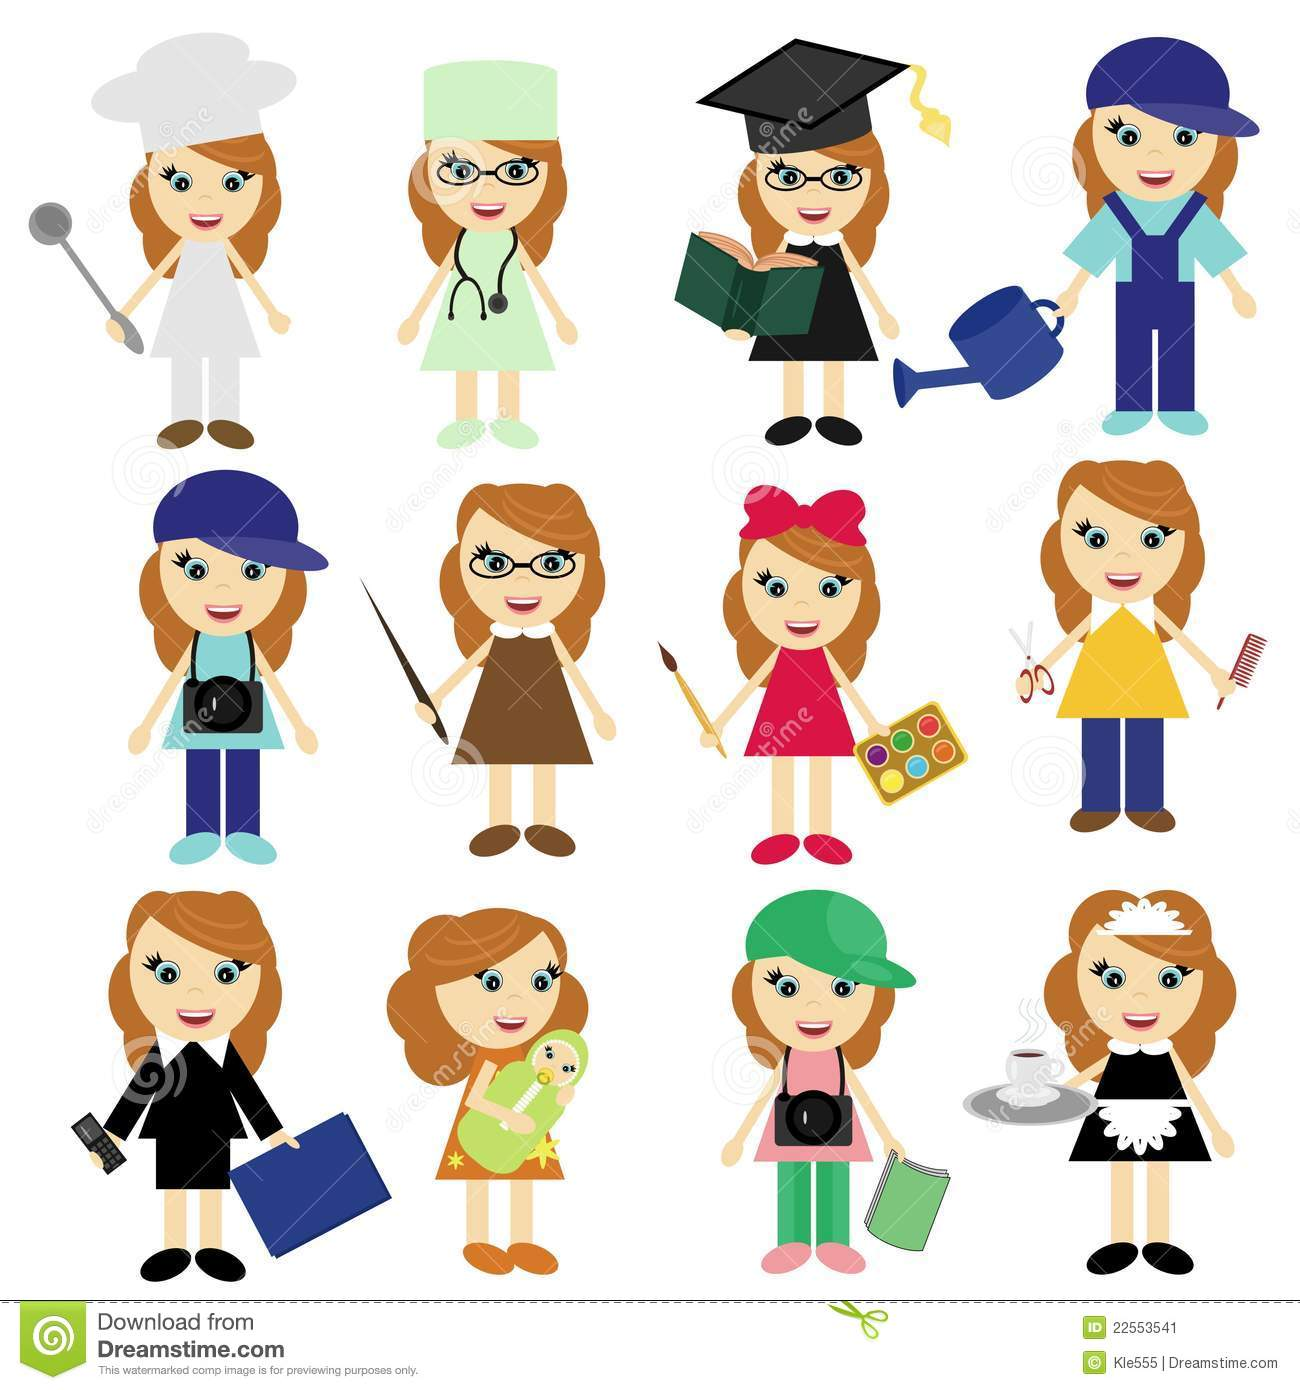 What are the professions for girls